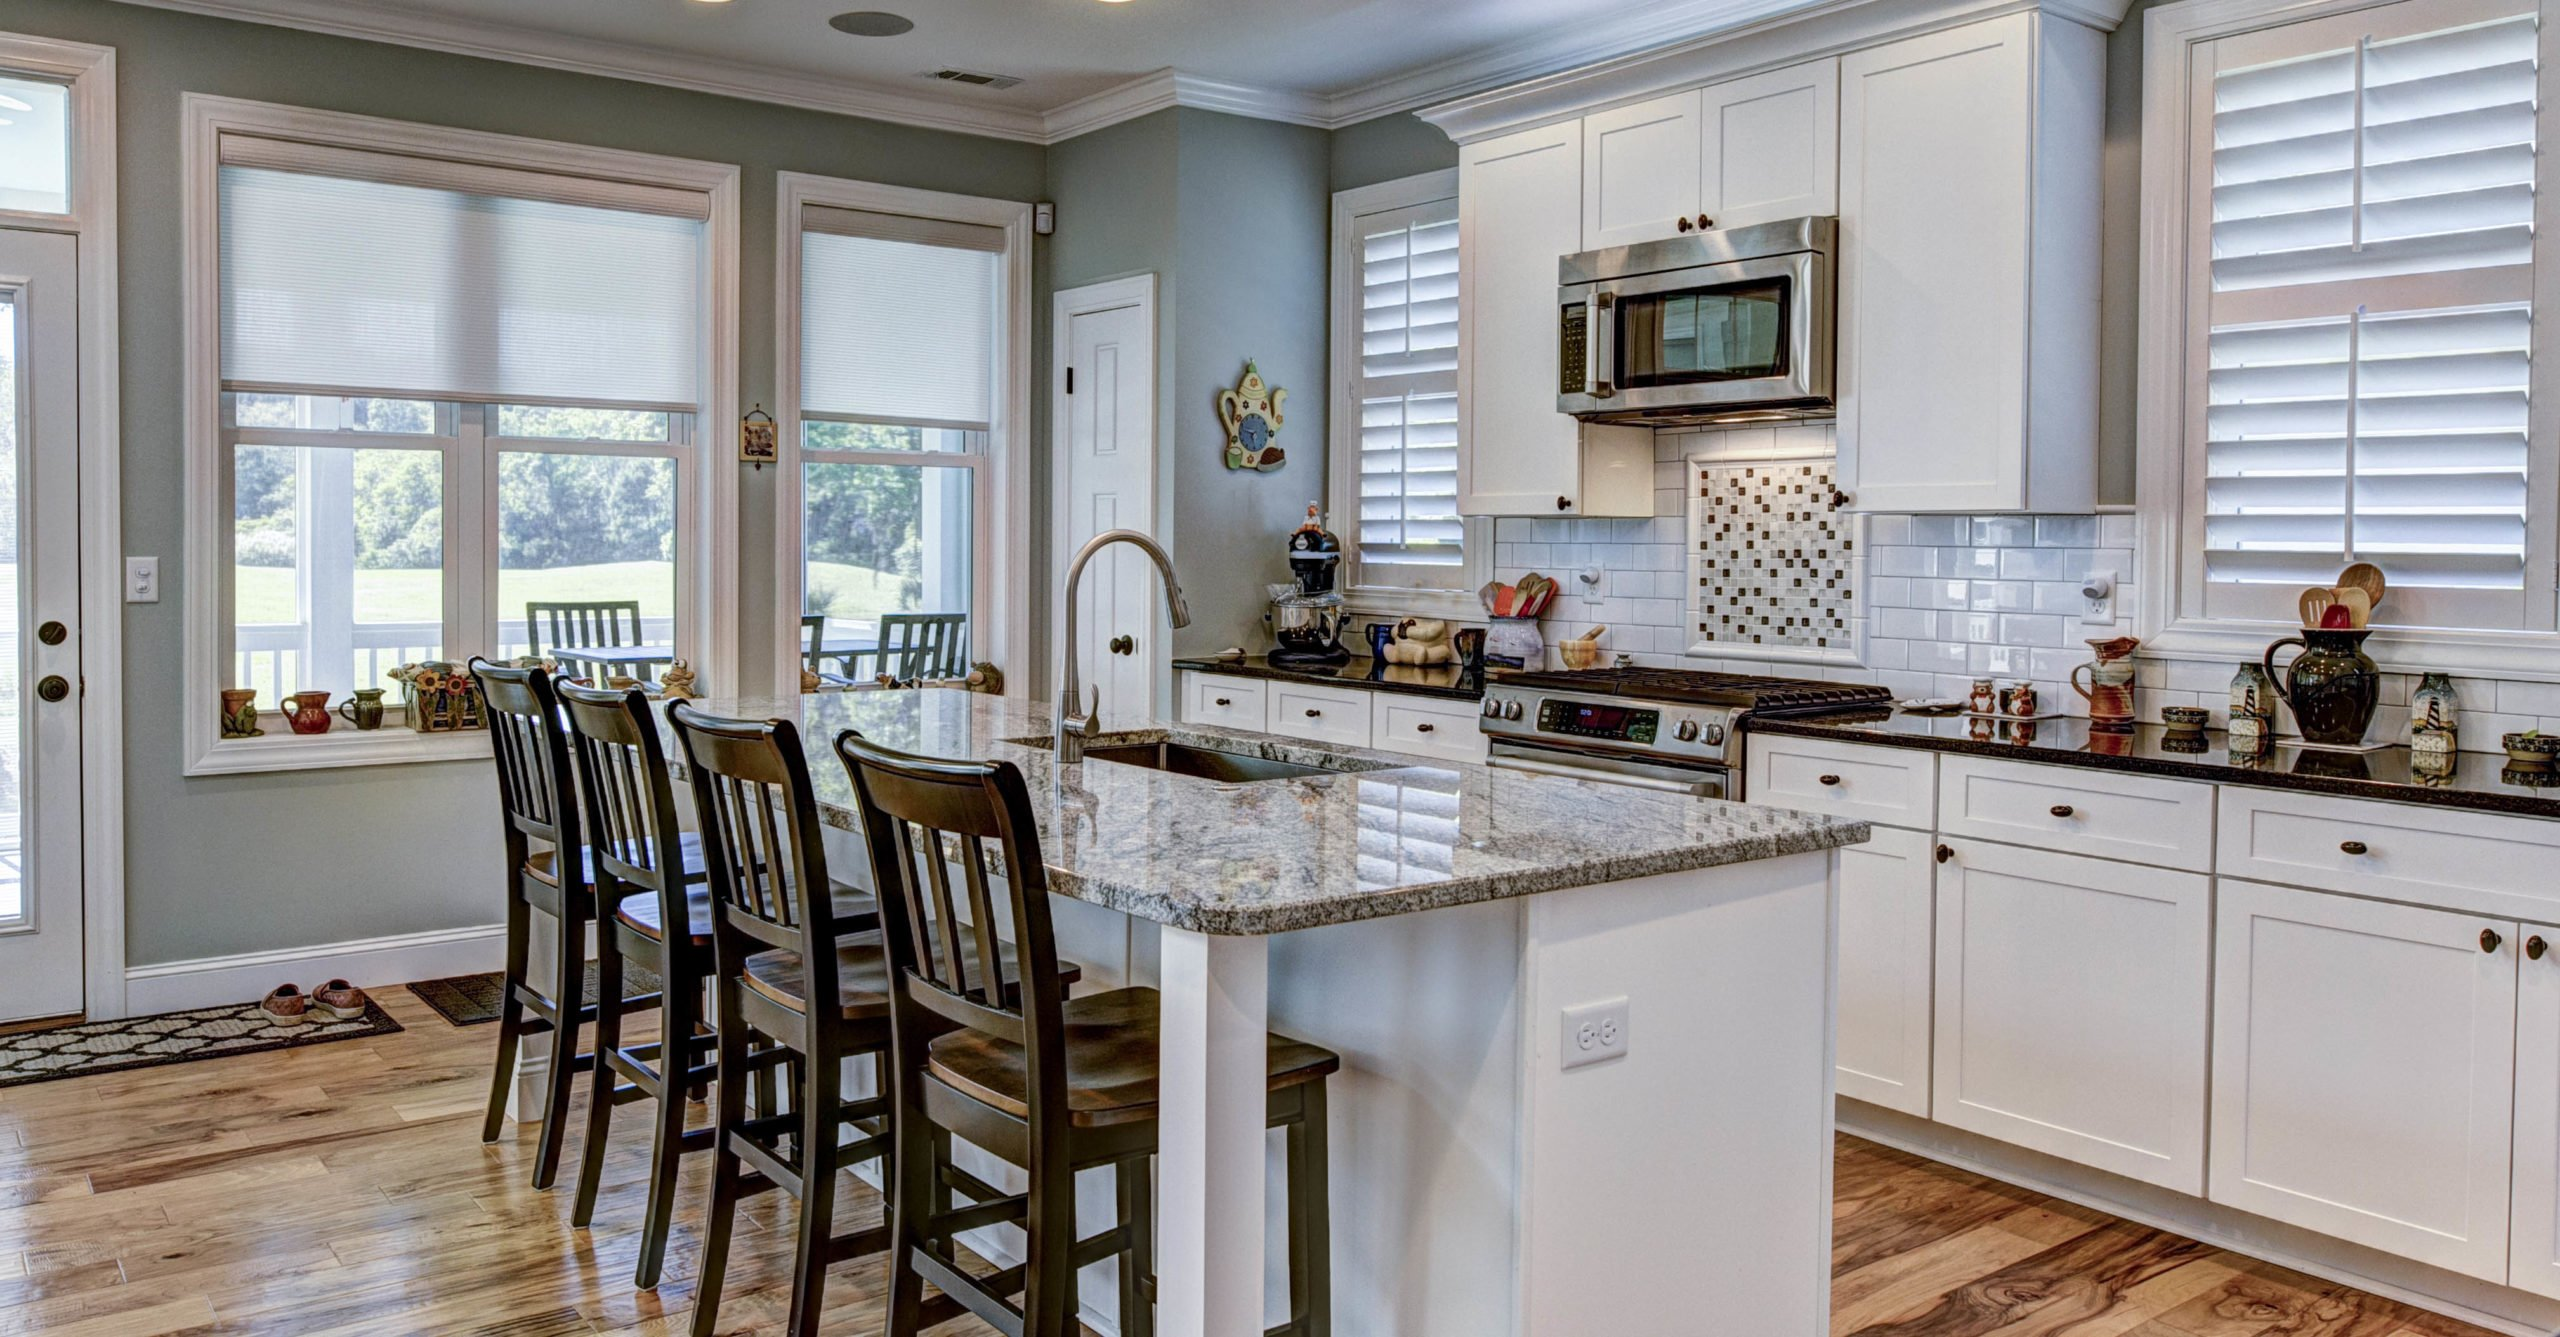 10 Best Kitchen Countertops 2020 Kitchen Countertop Options